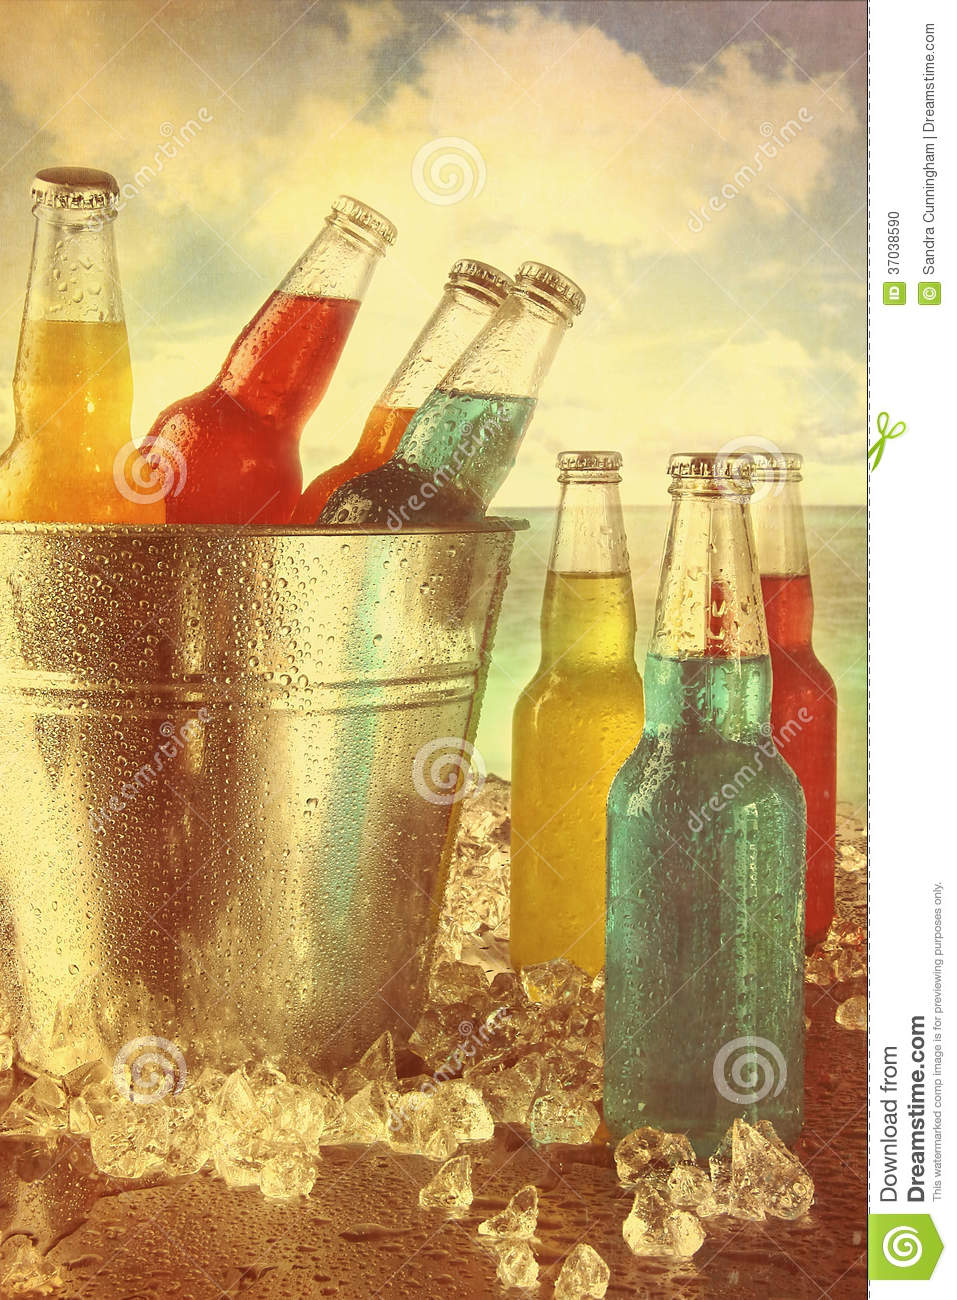 Summer Drinks In Ice Bucket At The Beach With Vintage Look